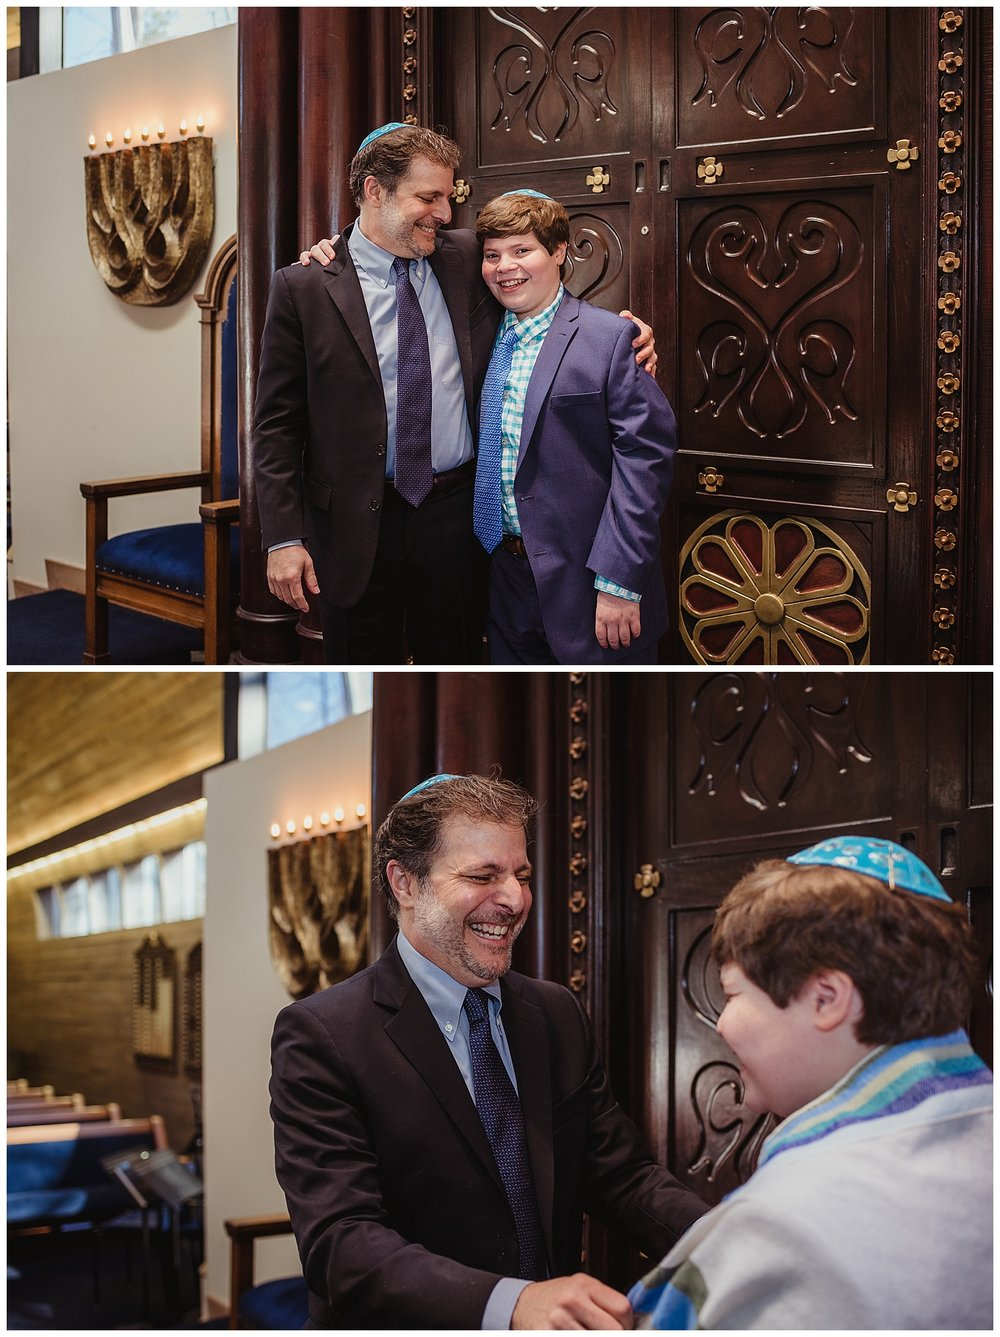 Dad poses with his son celebrating him becoming bar mitzvah at Temple Beth Or in Raleigh, NC.